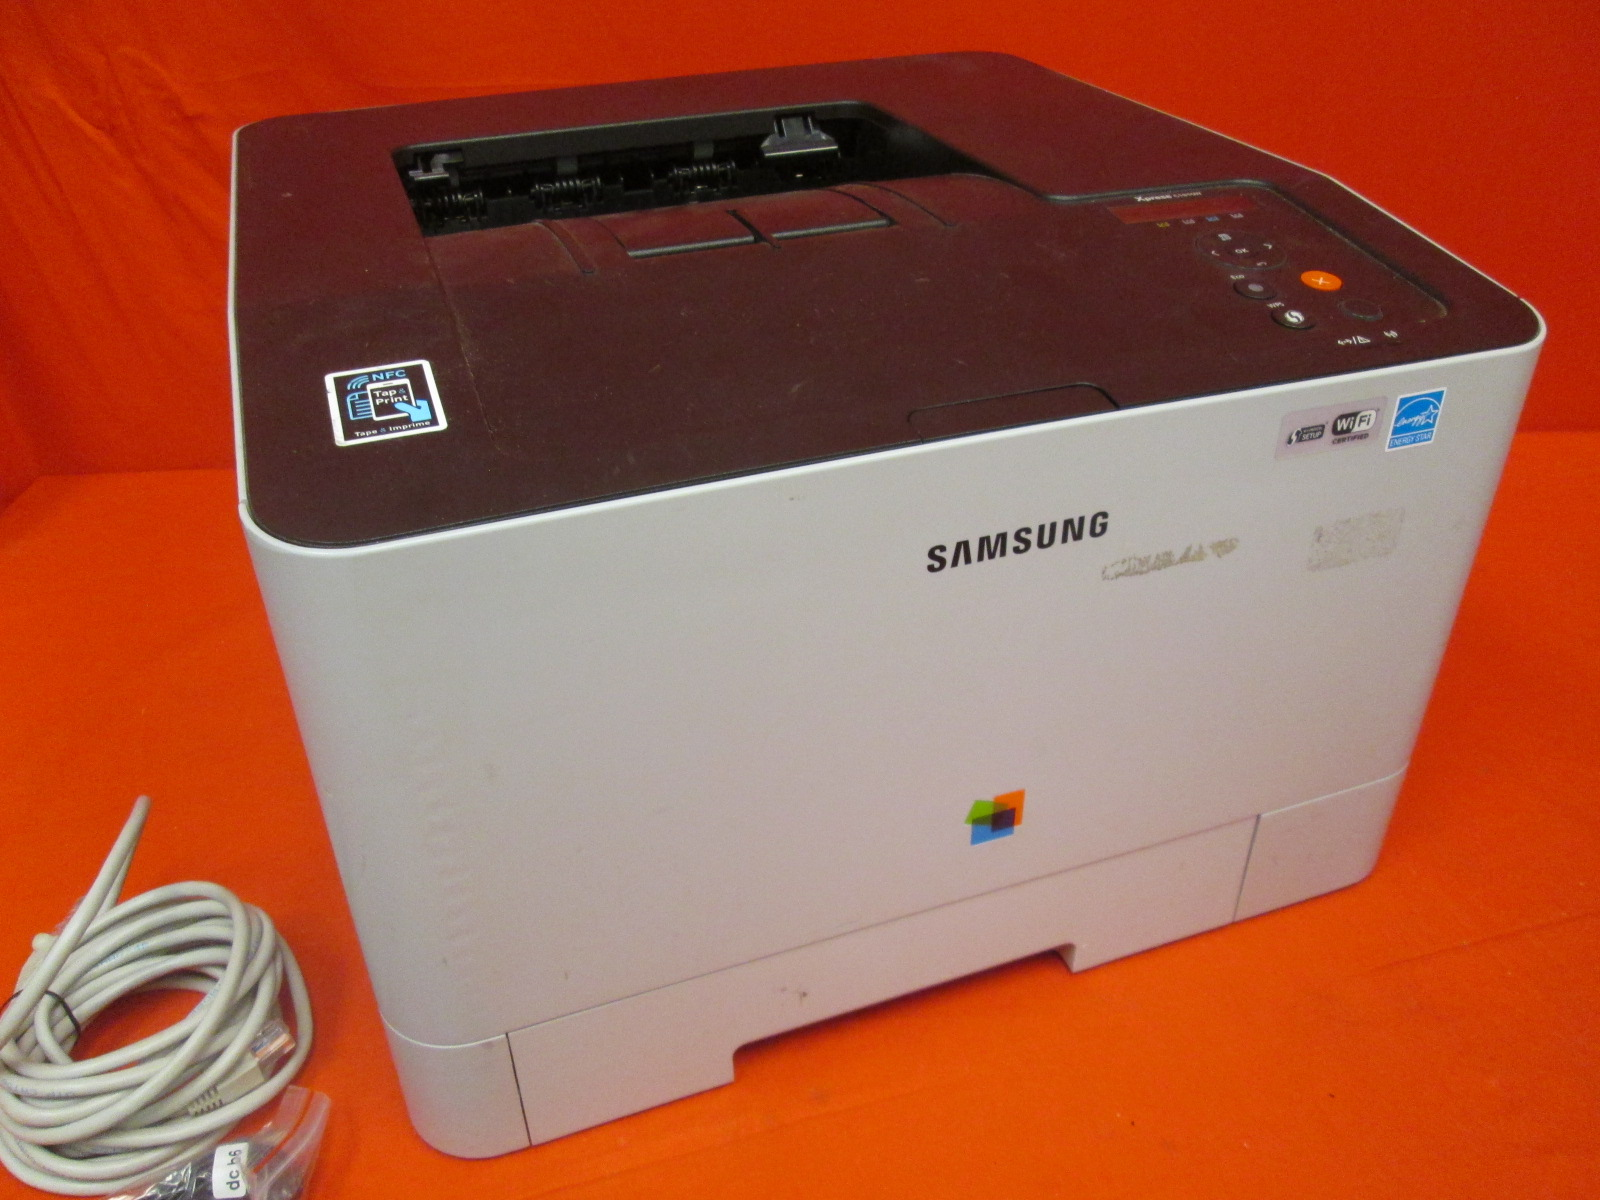 Samsung SL-C1810W/XAA Wireless Color Printer